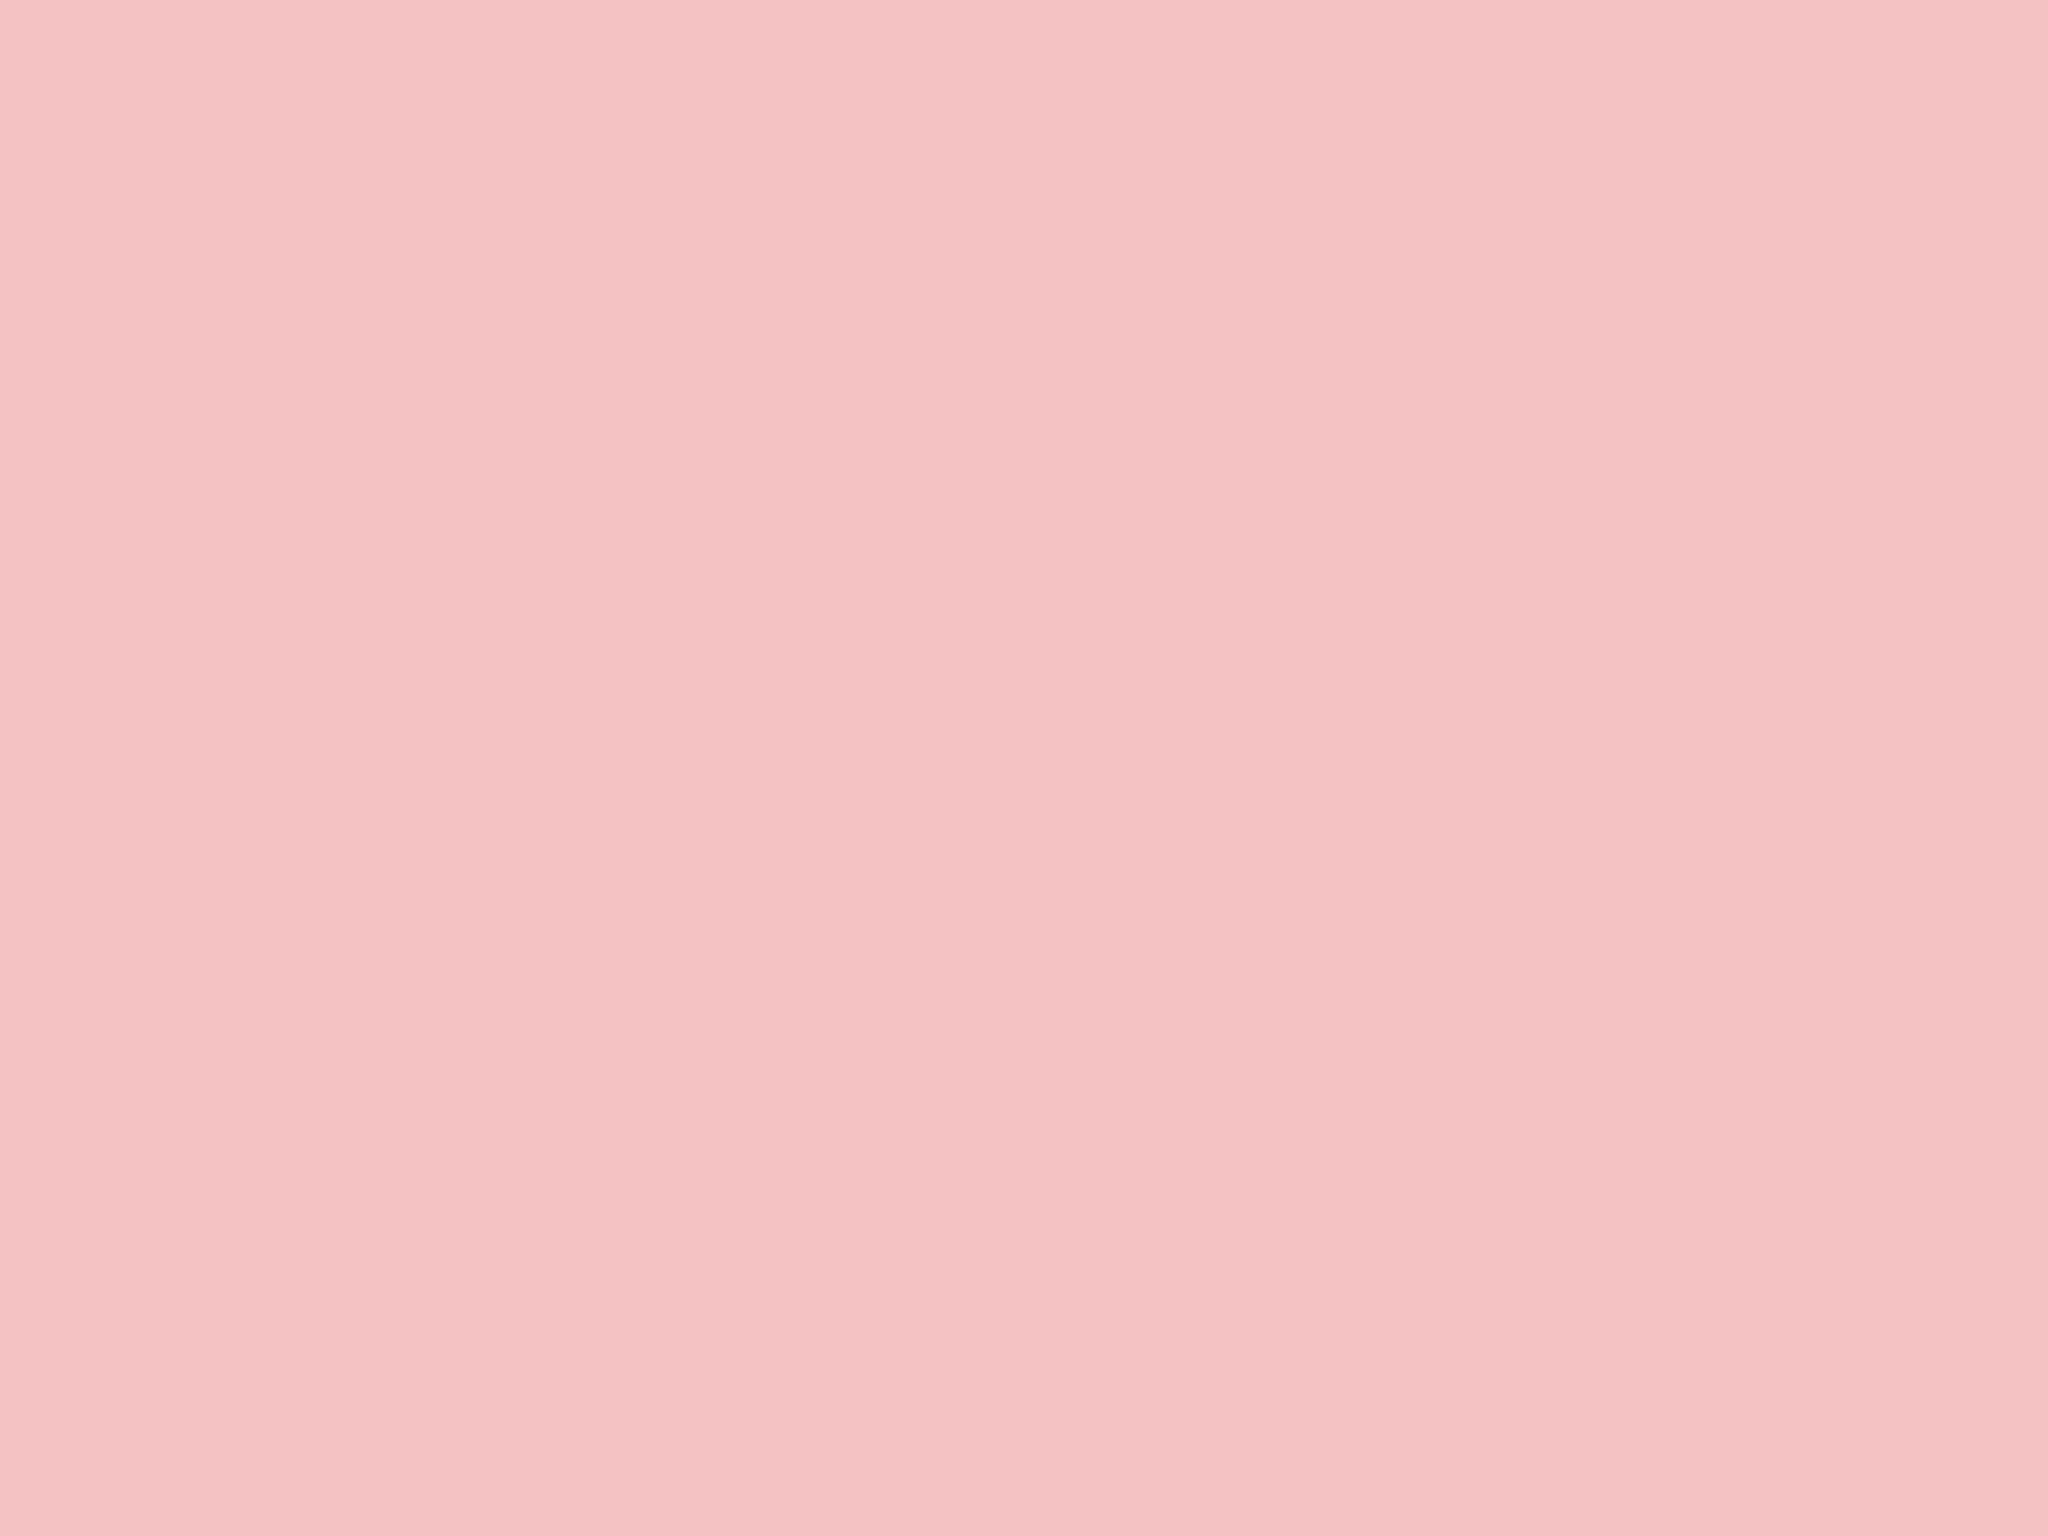 2048x1536 resolution Baby Pink solid color background view and 2048x1536